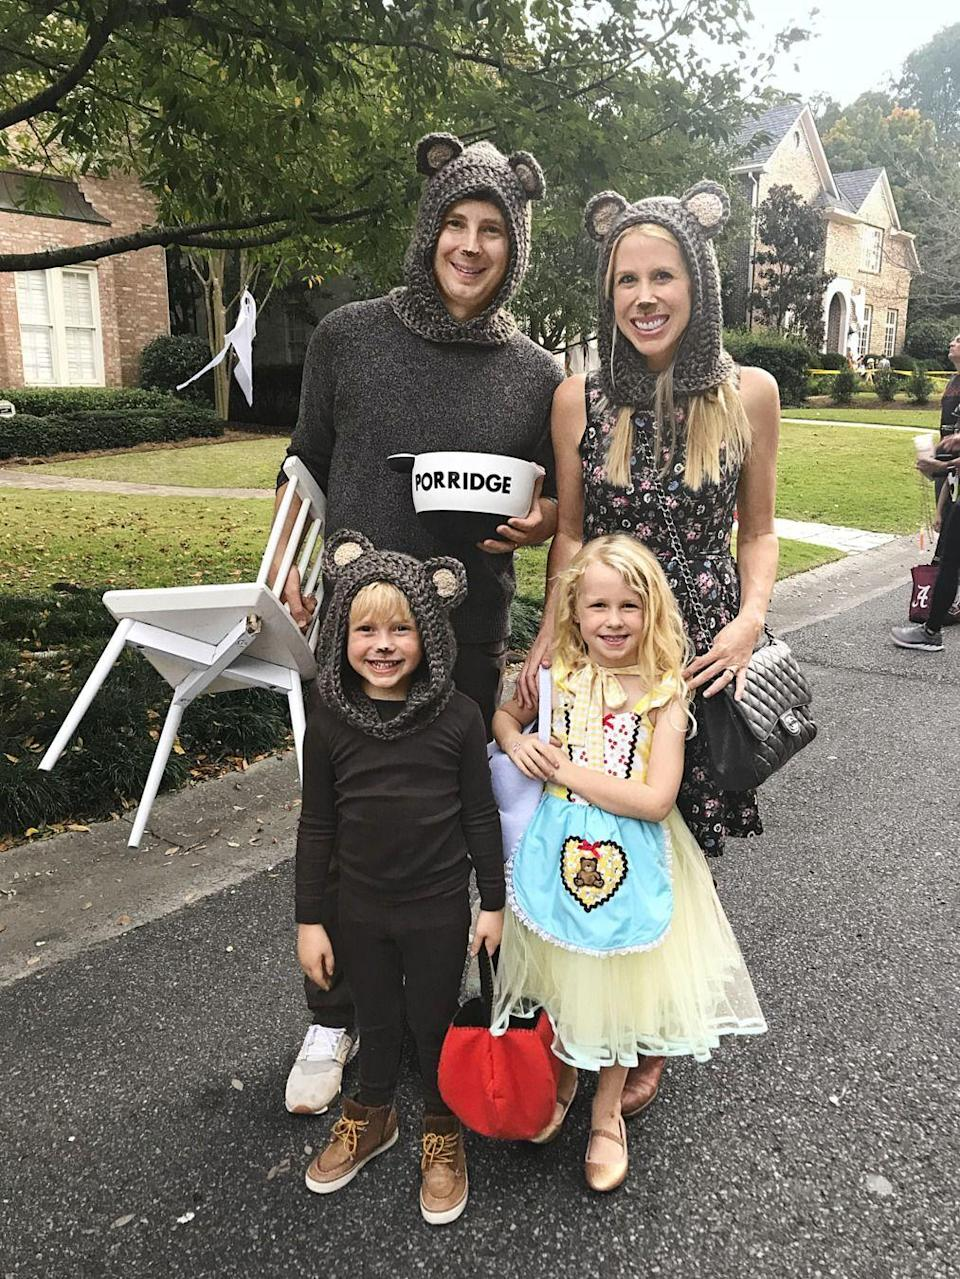 """<p><em>Country Living</em> Editor-in-Chief Rachel Hardage Barrett dressed her family up as the titular characters from Goldilocks and the Three Bears, and the result was <em>beyond</em> adorable. A clearly-labeled bowl of porridge is key!</p><p><a class=""""link rapid-noclick-resp"""" href=""""https://www.amazon.com/RARITY-US-Toddlers-Winter-Beanie-Coffee/dp/B07JJHWZHG?tag=syn-yahoo-20&ascsubtag=%5Bartid%7C10050.g.29074815%5Bsrc%7Cyahoo-us"""" rel=""""nofollow noopener"""" target=""""_blank"""" data-ylk=""""slk:SHOP BEAR HATS"""">SHOP BEAR HATS</a></p>"""